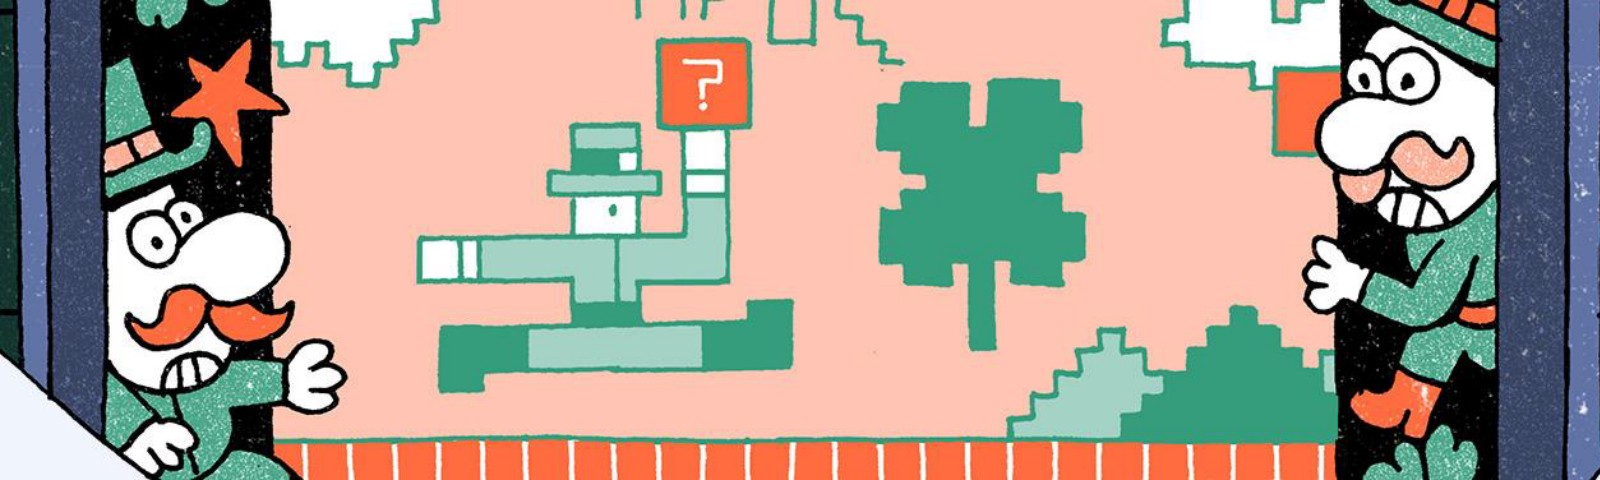 Leprachauns on either side of the illustration look at an 8-bit video-game style drawing of a leprachaun with a? box.